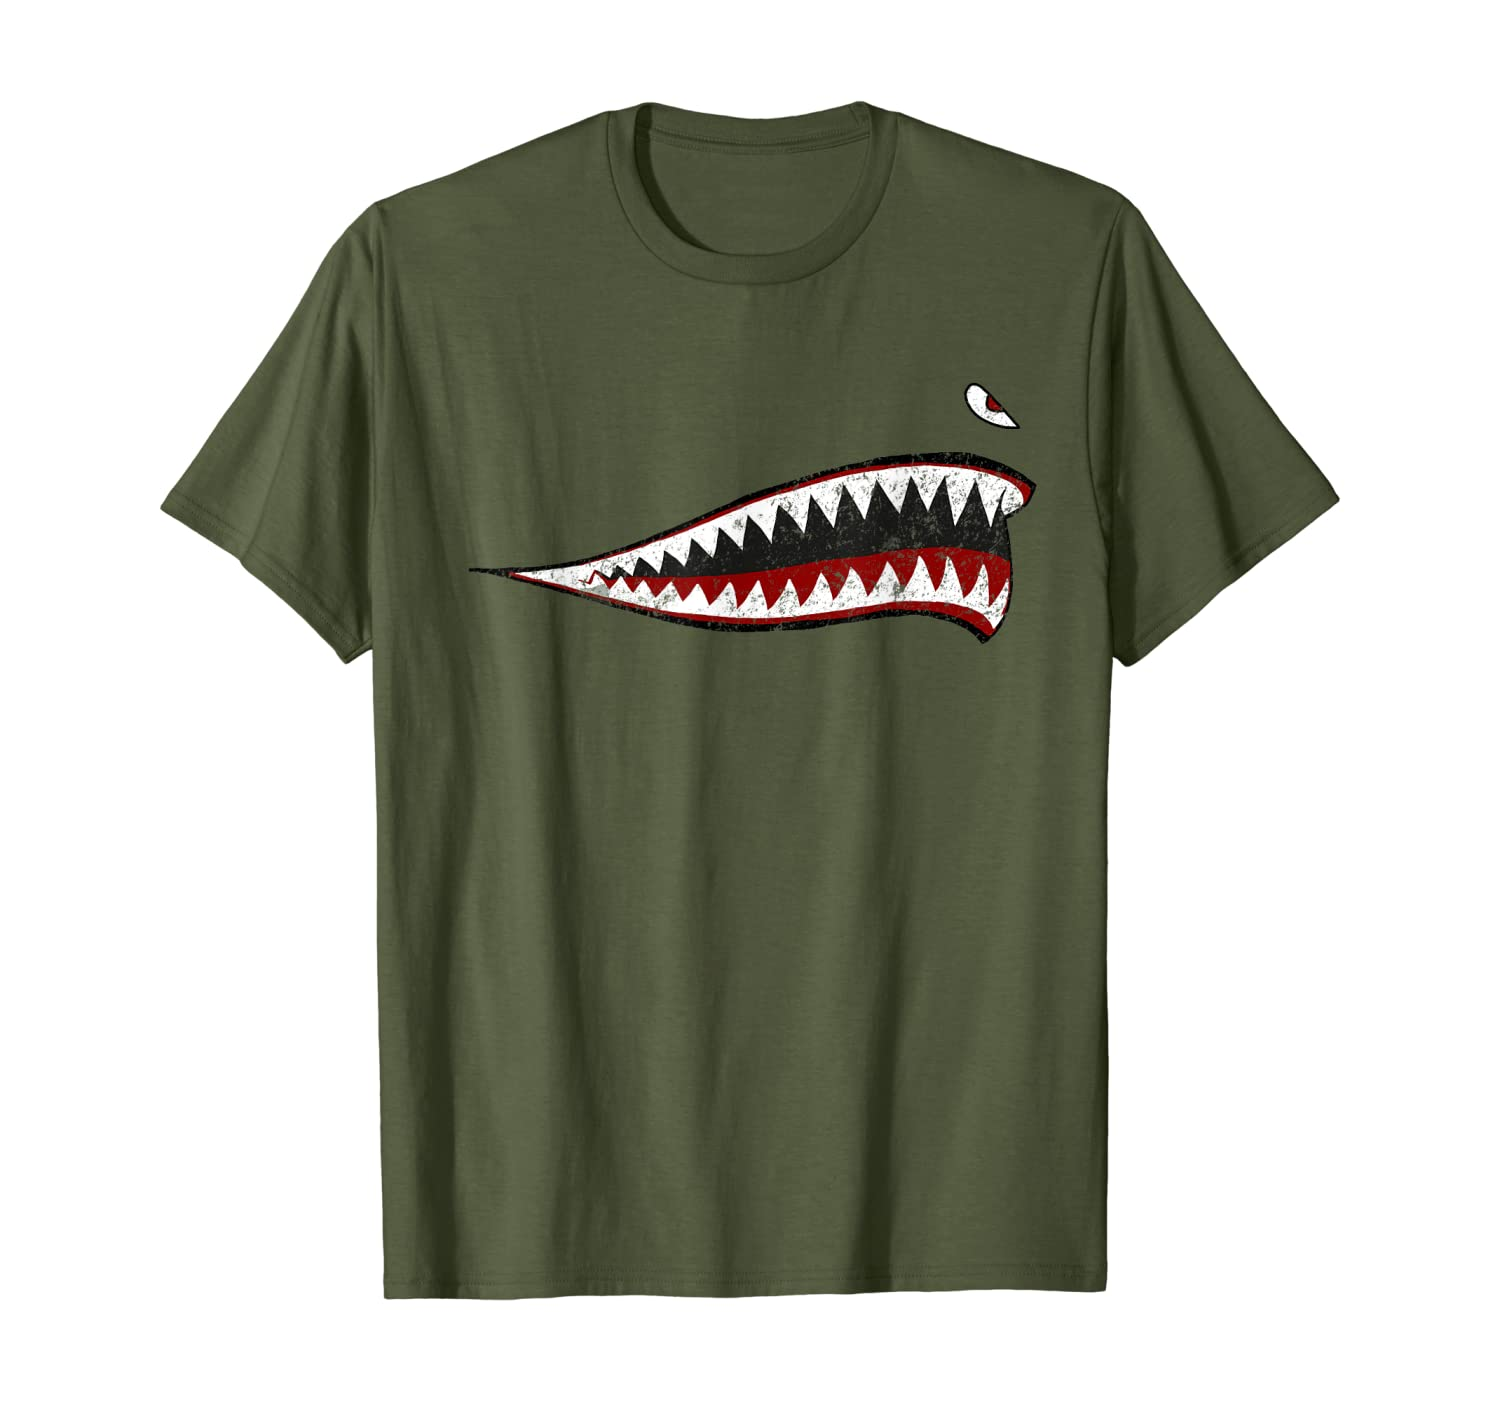 Shark Teeth P-40 Warhawk Nose Art WWII WW2 Airplane Vintage T-Shirt